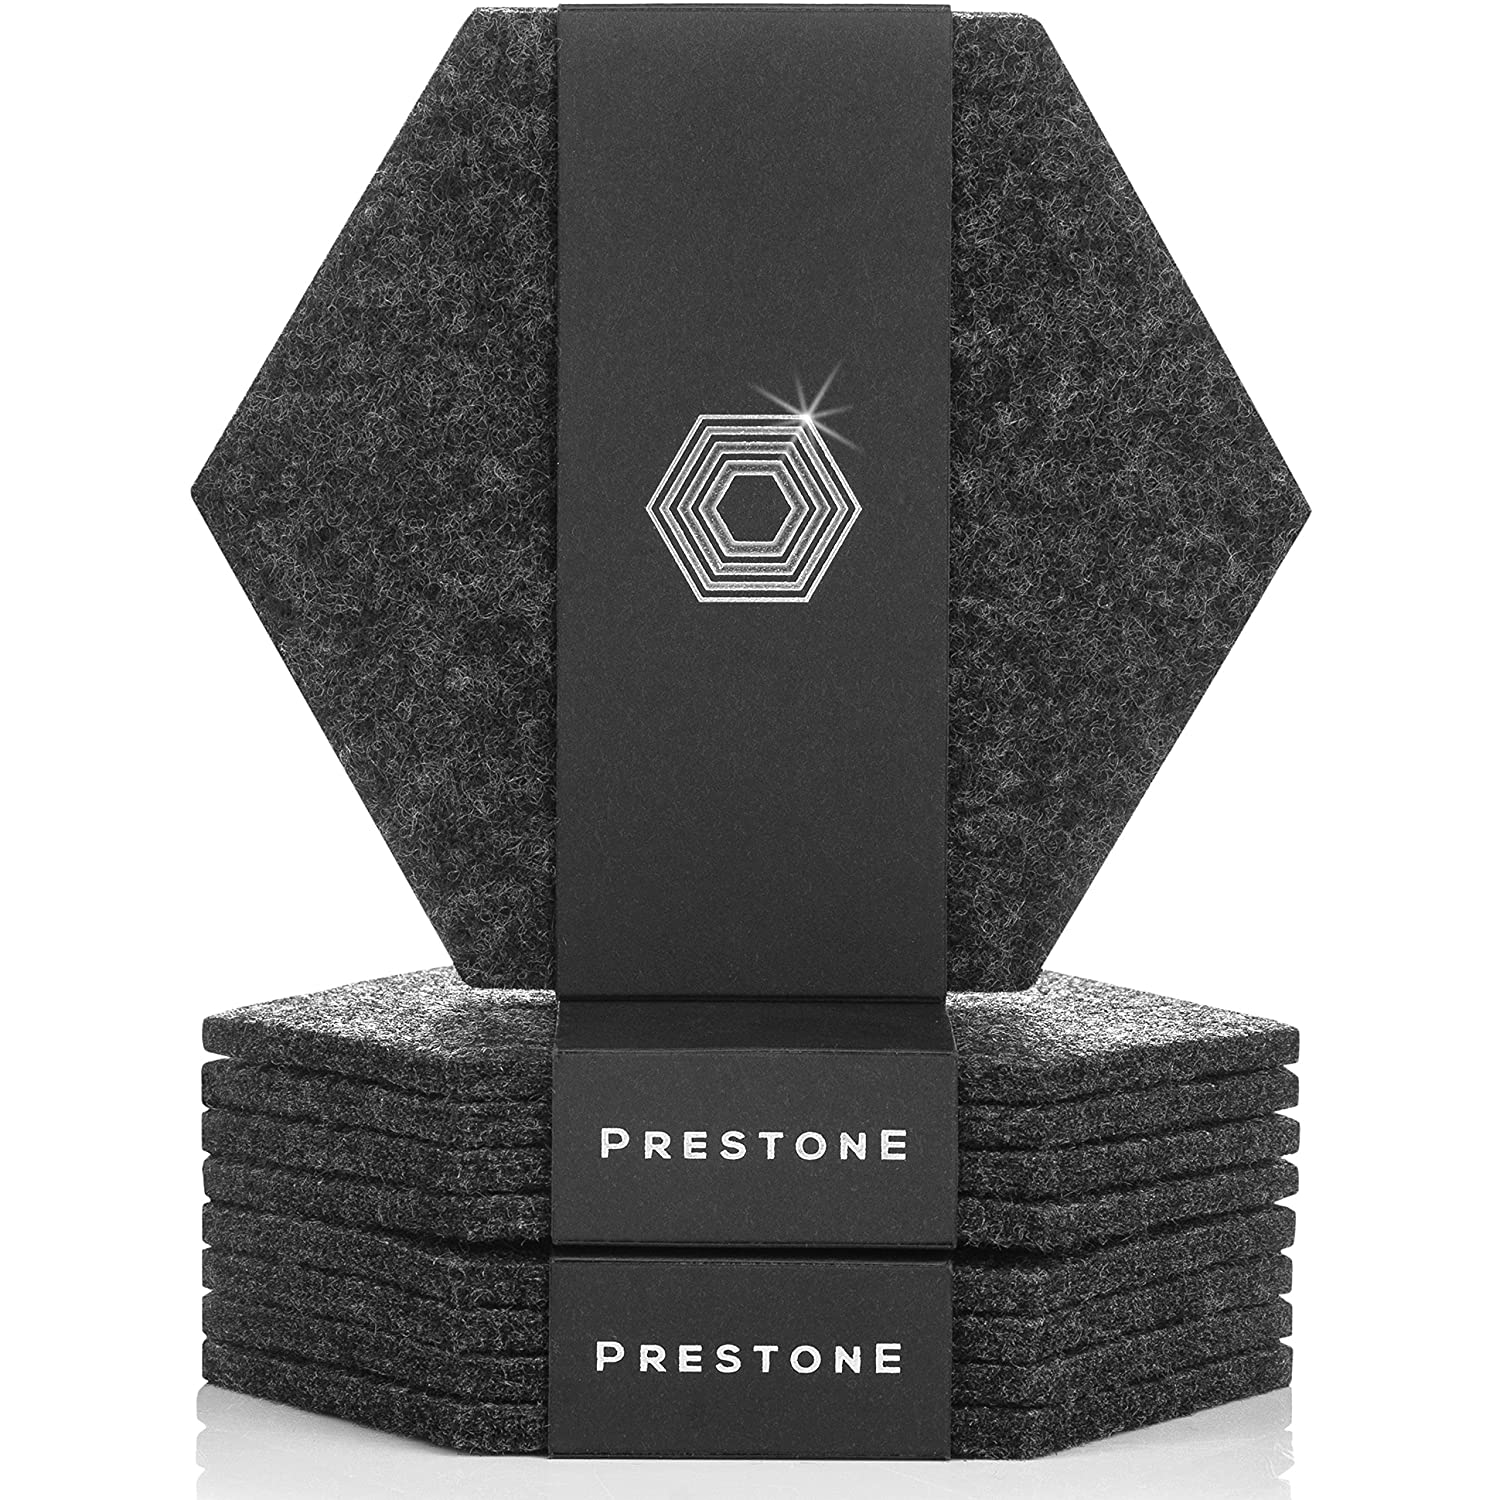 Coasters For Drinks Set of 9   Absorbent Felt Coasters With Double Holder And Unique Phone Coaster   Premium Package, Perfect Housewarming Gift   Protects Furniture (Hexagon, Charcoal) New 2018